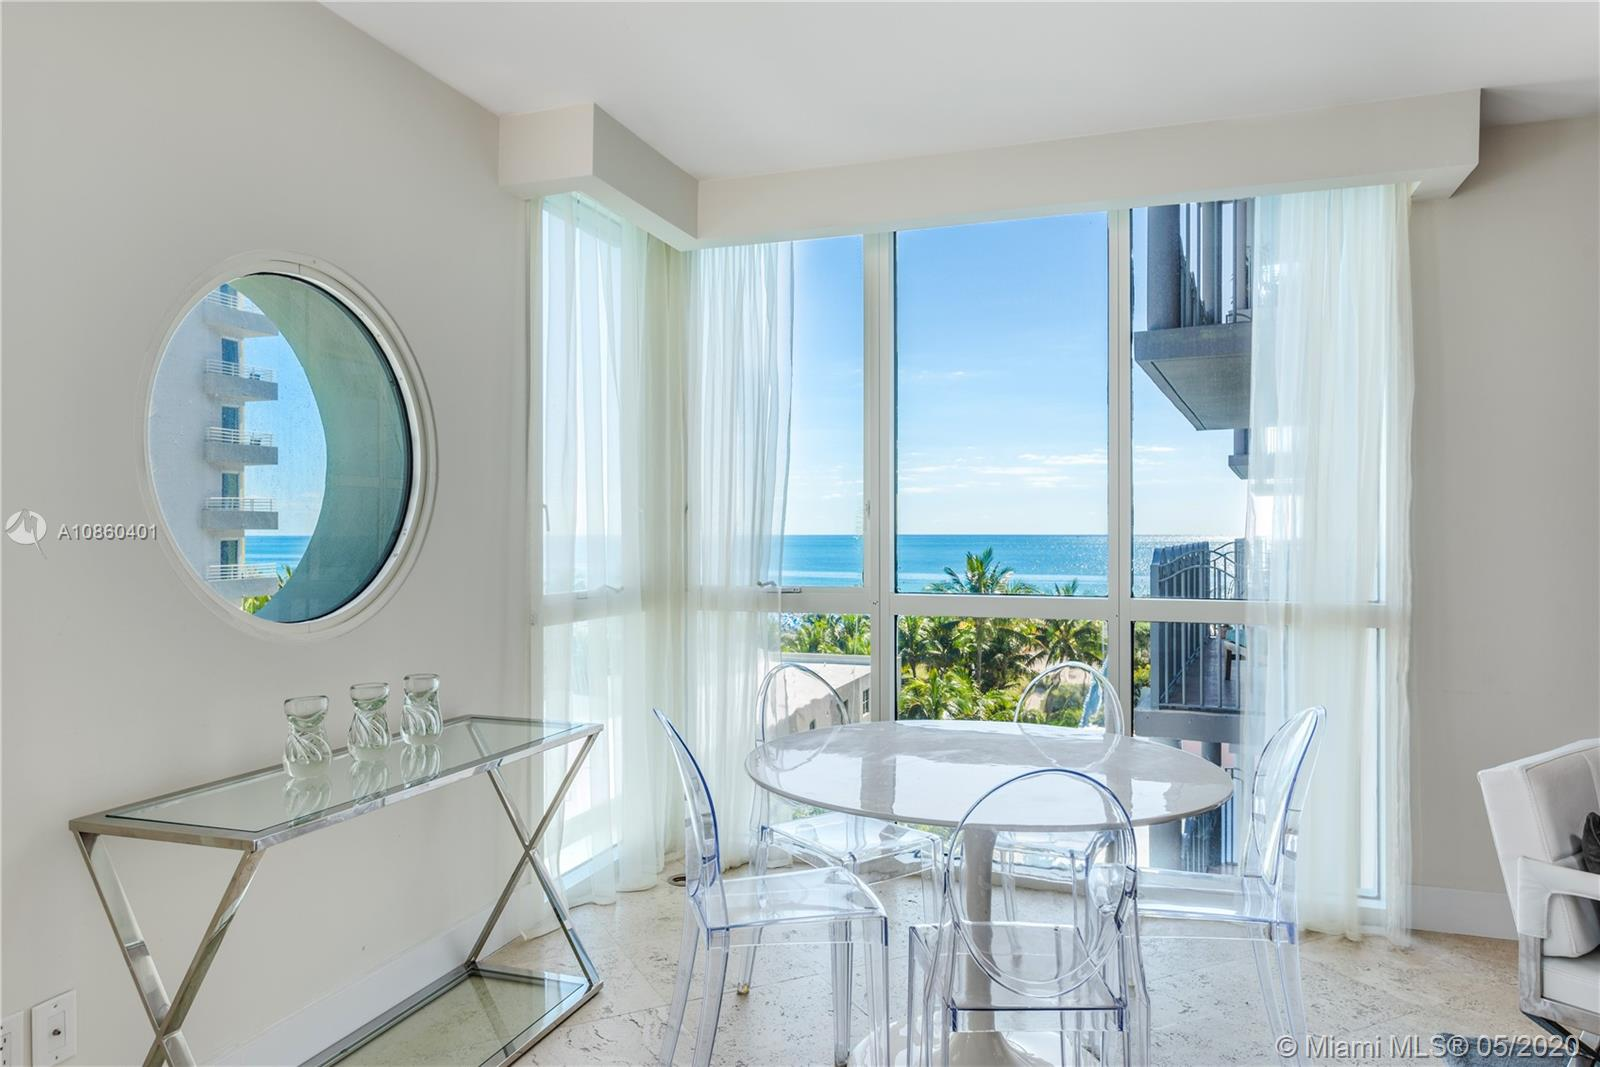 Live in the heart of South Beach in the beautiful Michael Graves building! Two bedrooms and two bathrooms with DIRECT ocean views from floor to ceiling windows in living room. Renovated kitchen with stainless steel appliances and tons of closet space. Ocean front luxury building with full amenities including beach service.